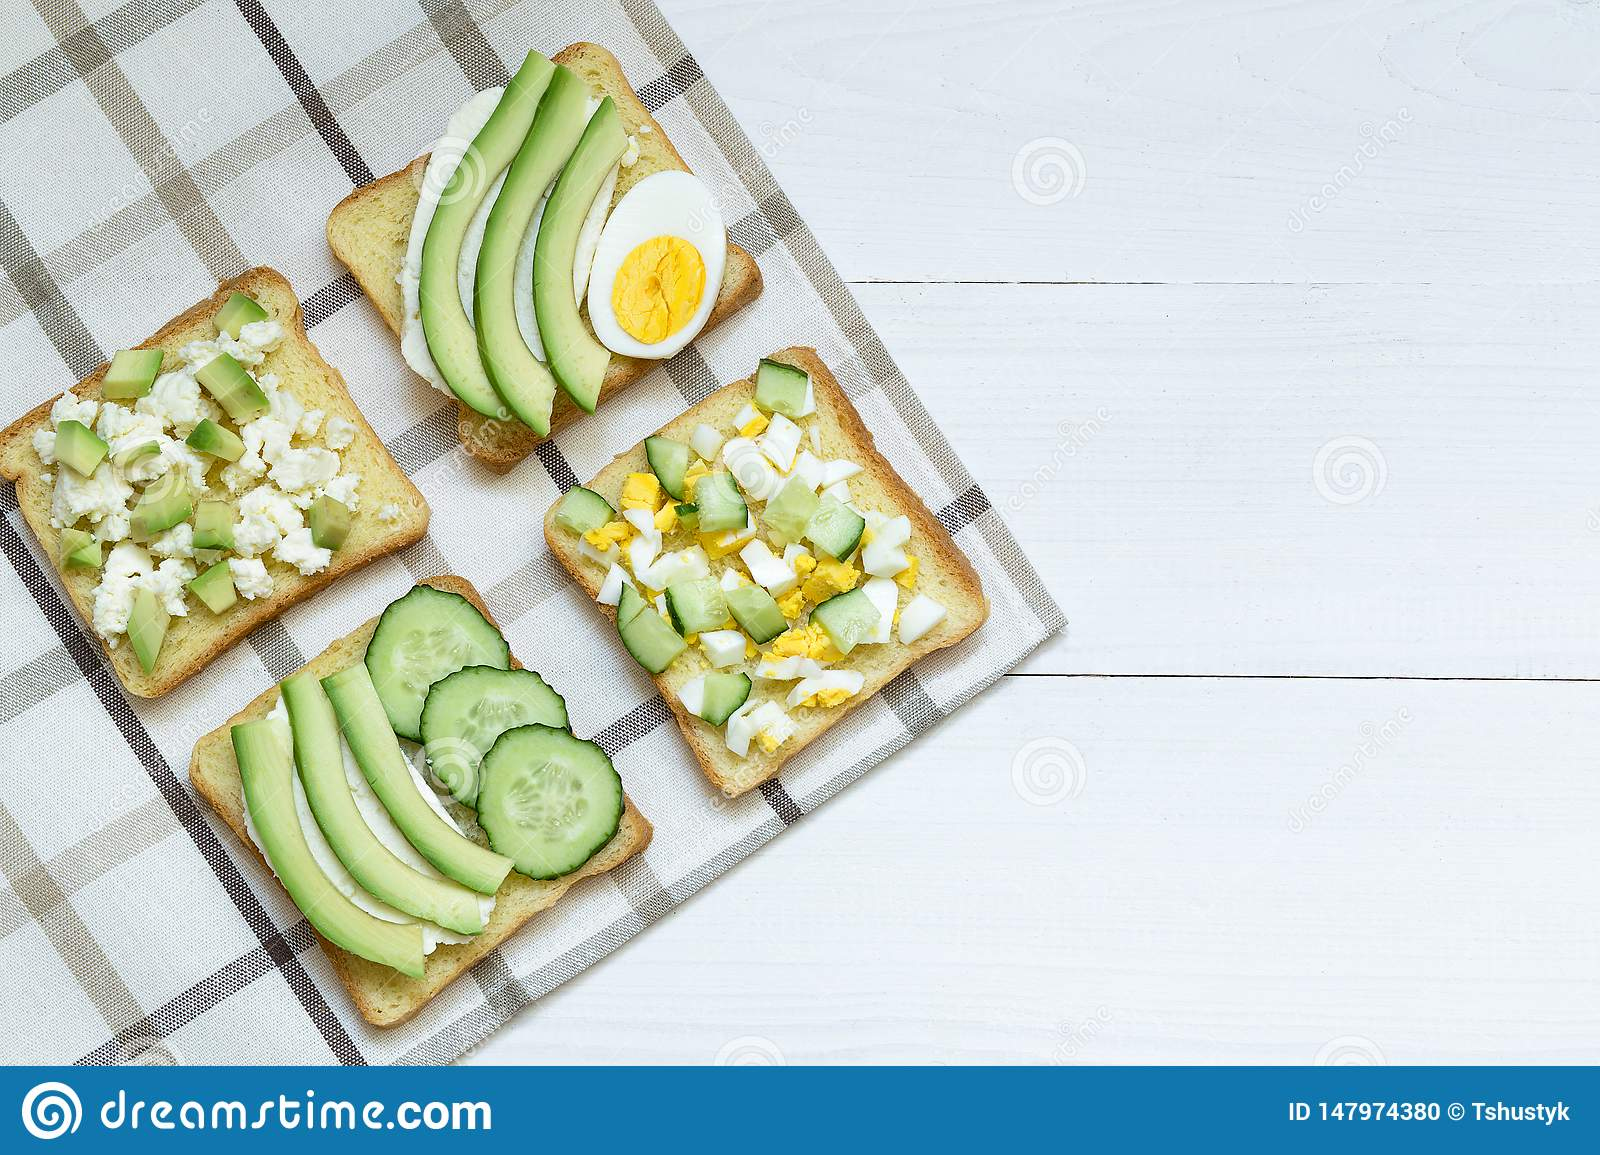 Variety of sandwiches for breakfast, snack, avocado, egg, cream cheese on bread sandwiches, white background